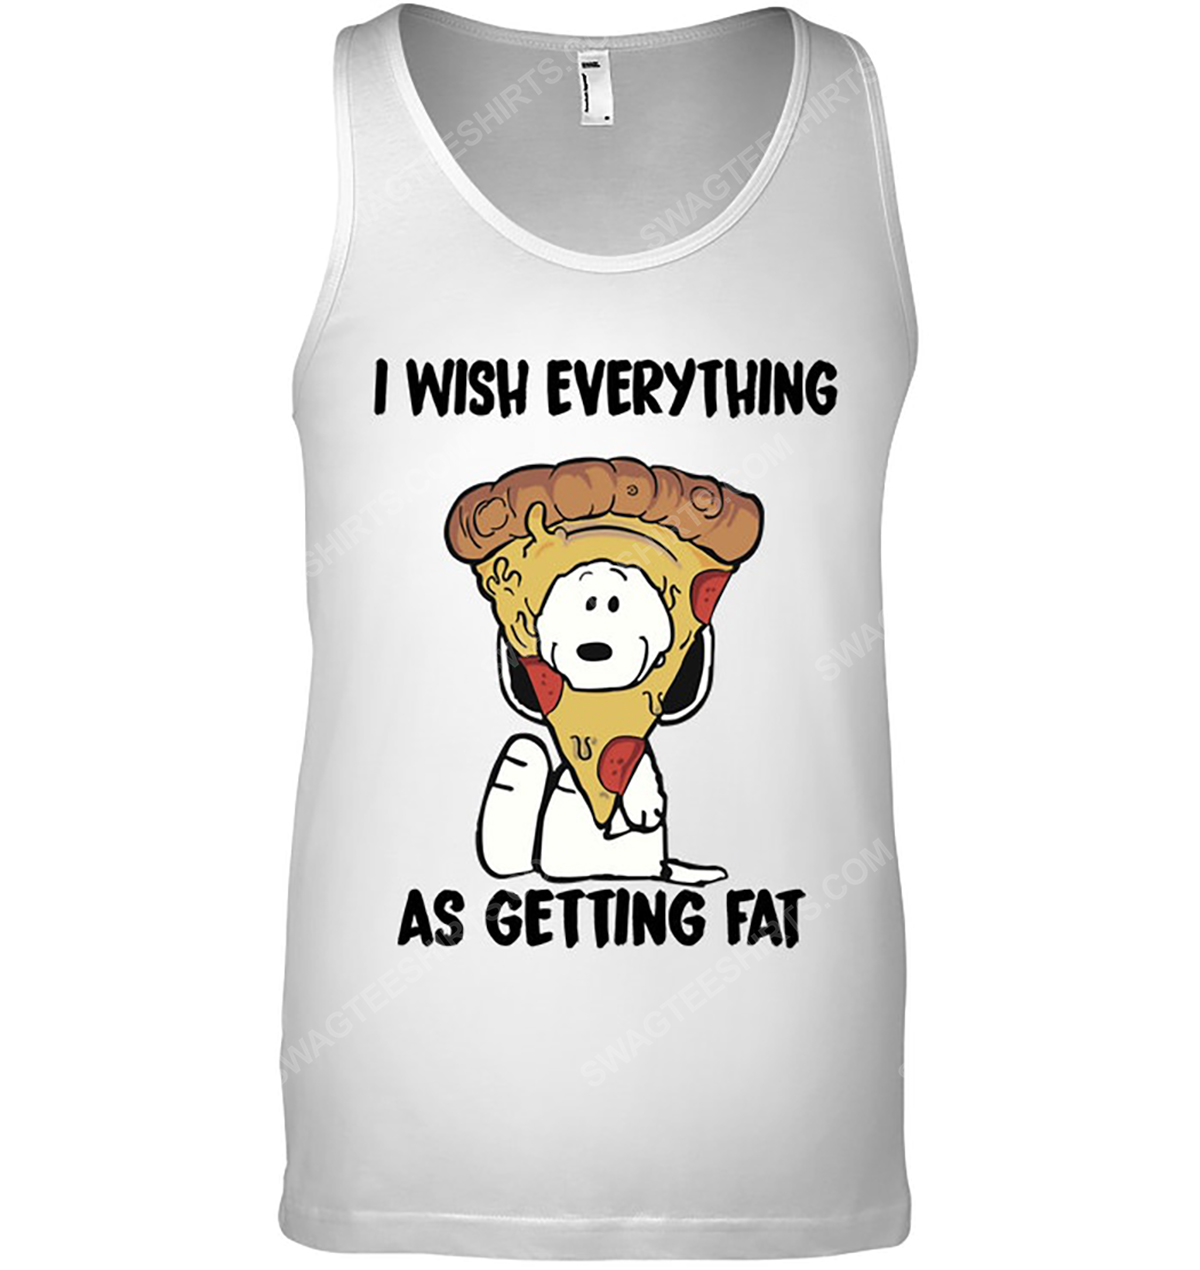 Snoopy and pizza i wish everything as getting eat tank top 1